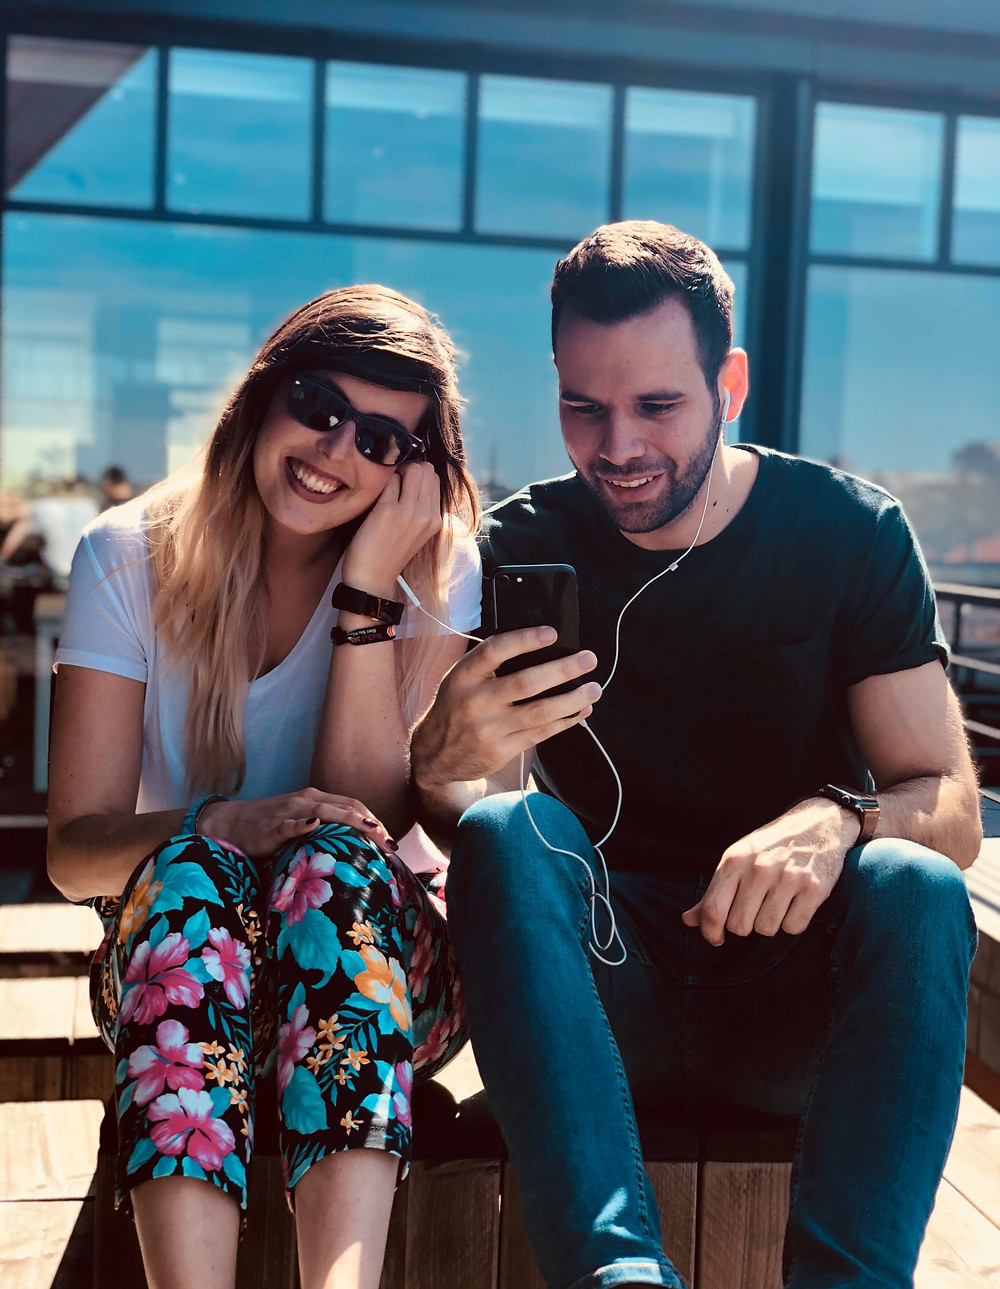 man and woman listen on headphones